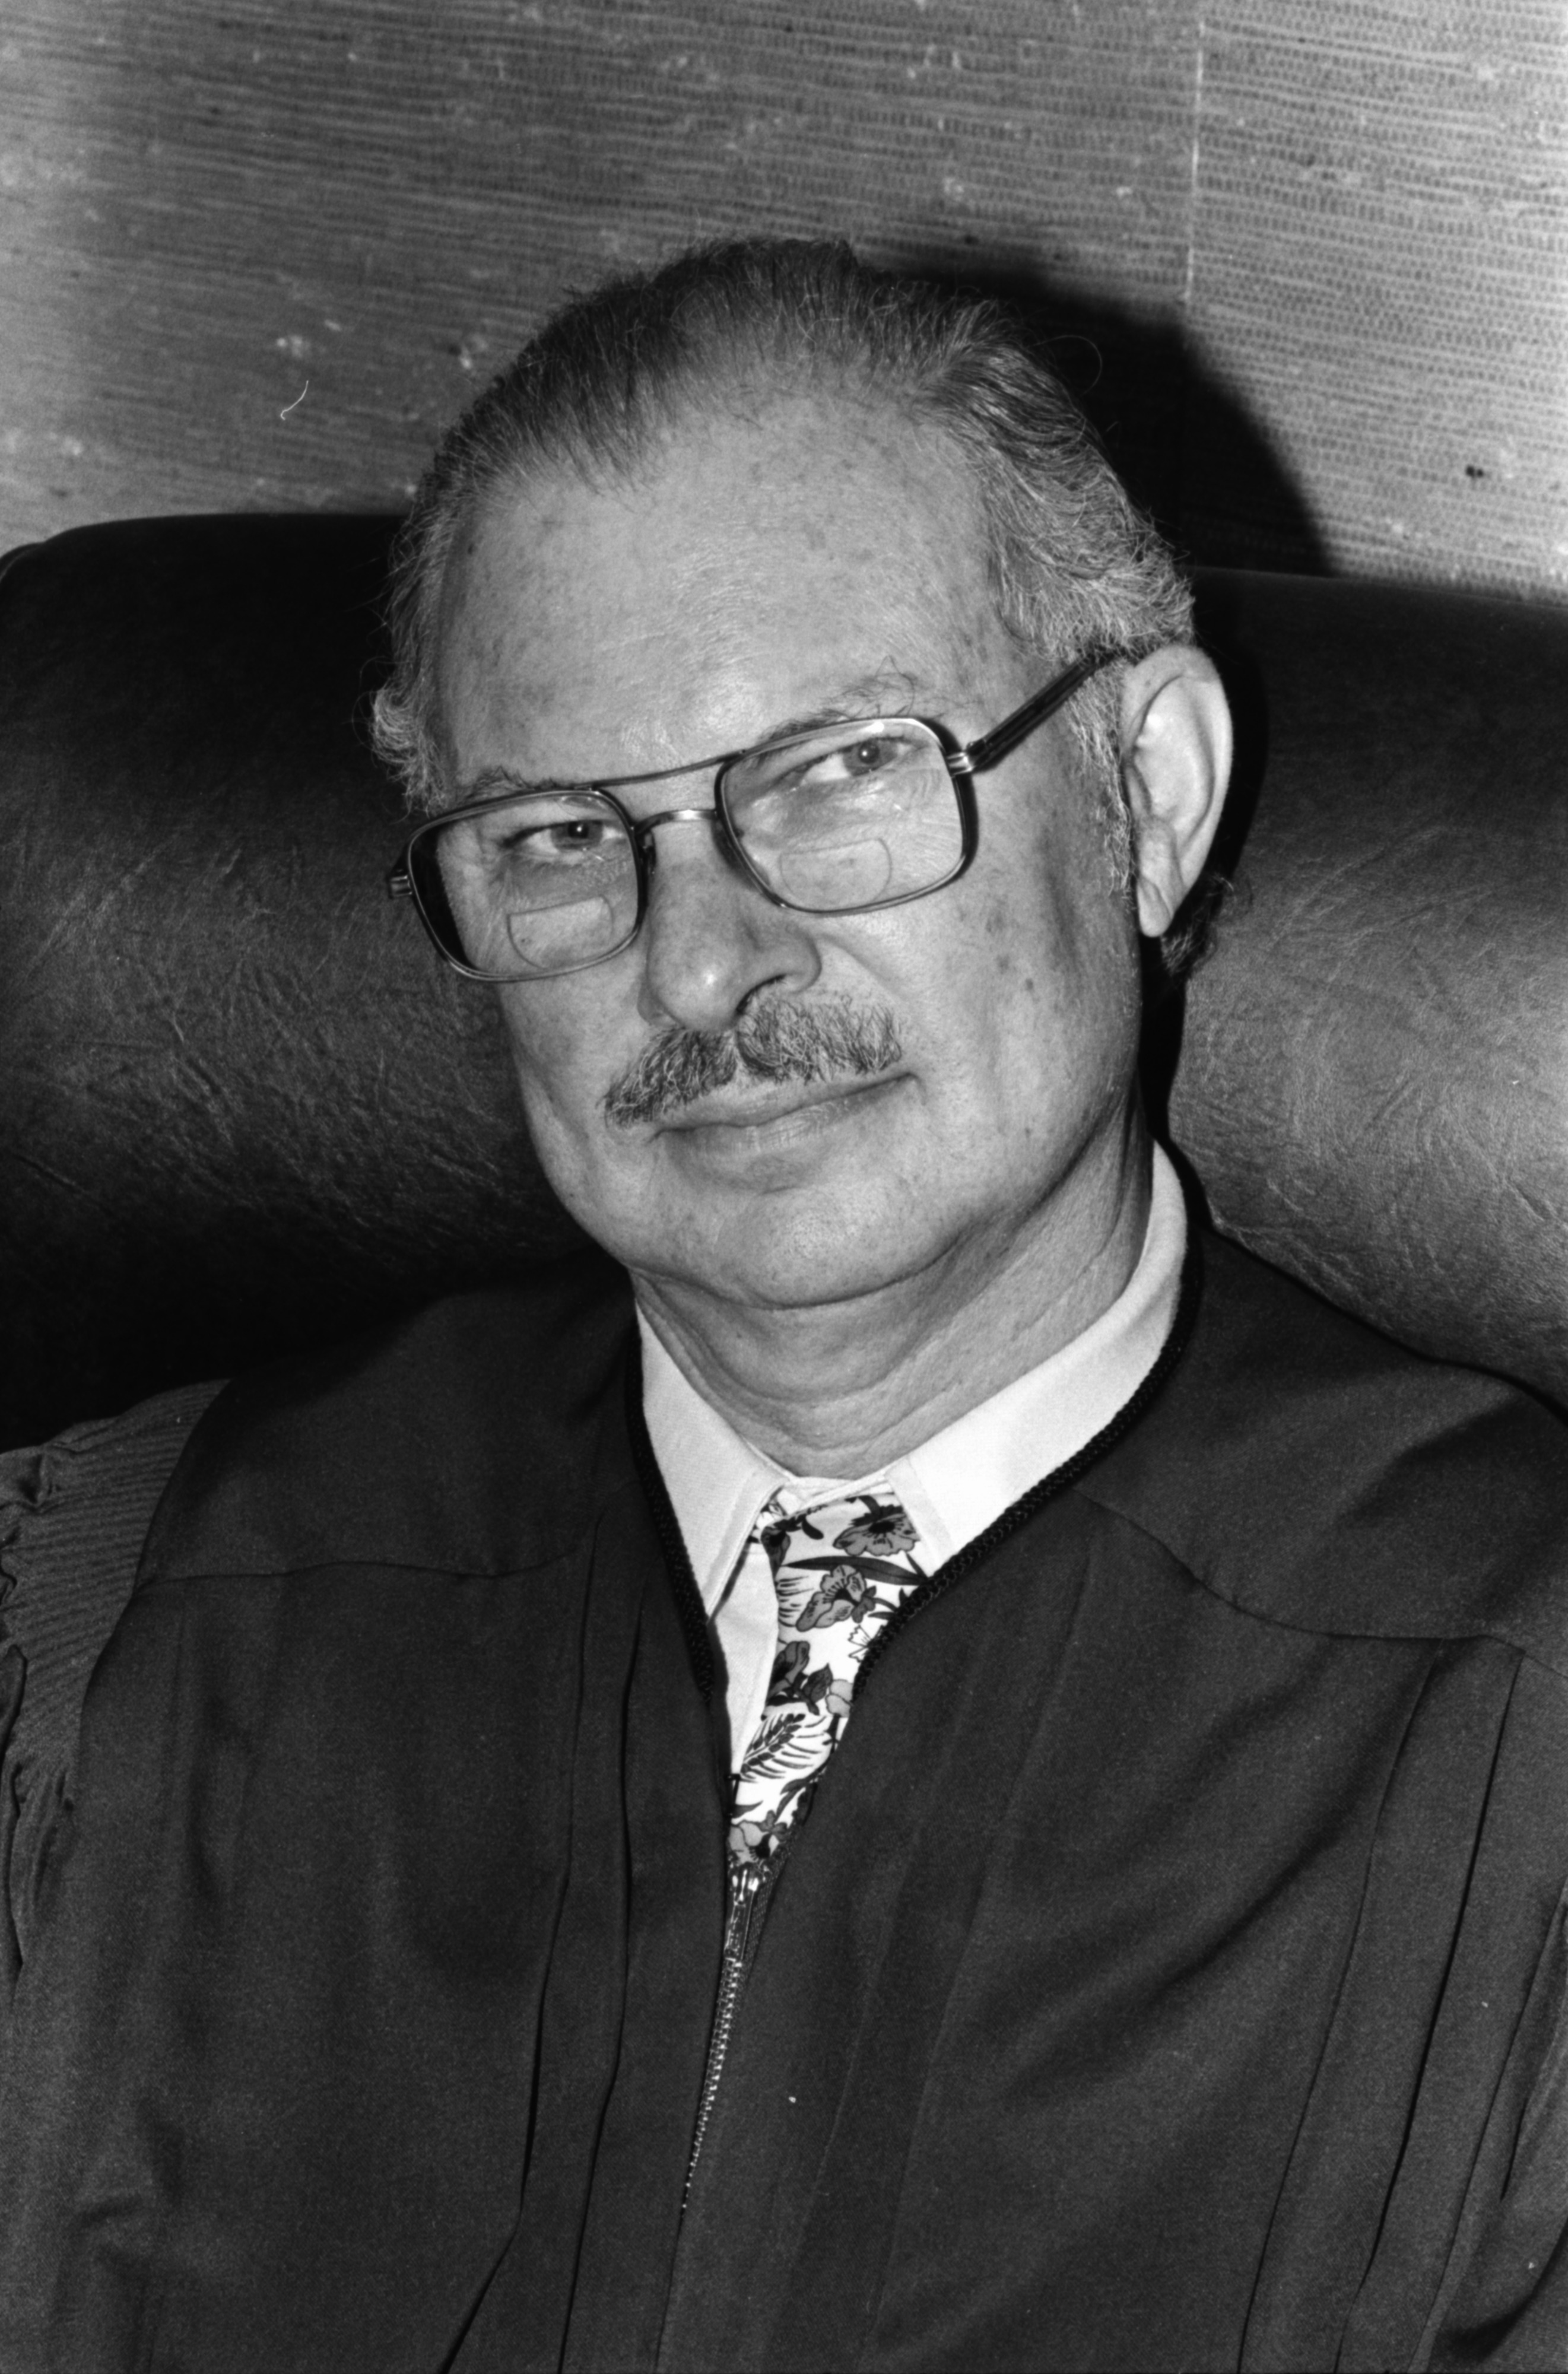 Head Shot of Judge S. J. Elden, June 1979 image